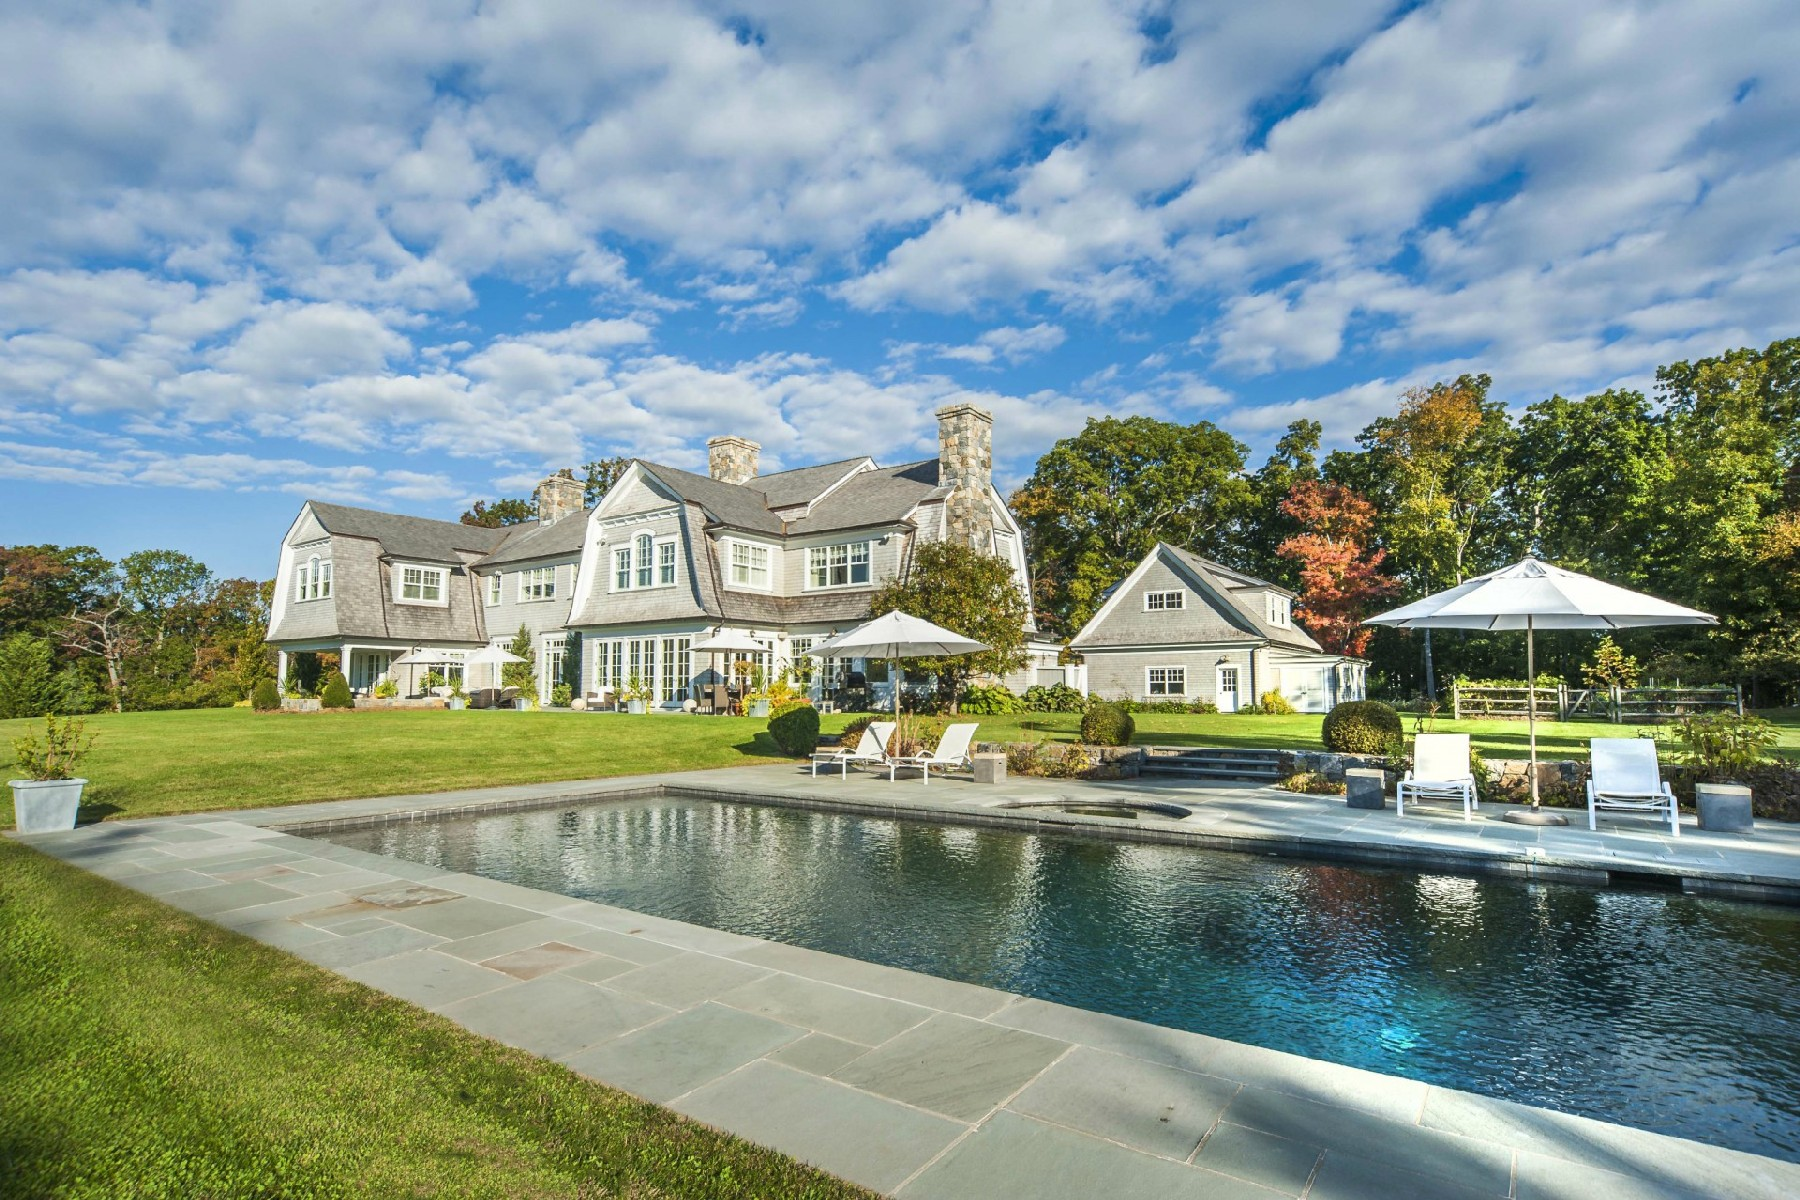 House for Sale at Magnificent Estate on 7.1 Acre Island 20 Juniper Road Darien, Connecticut 06820 United States